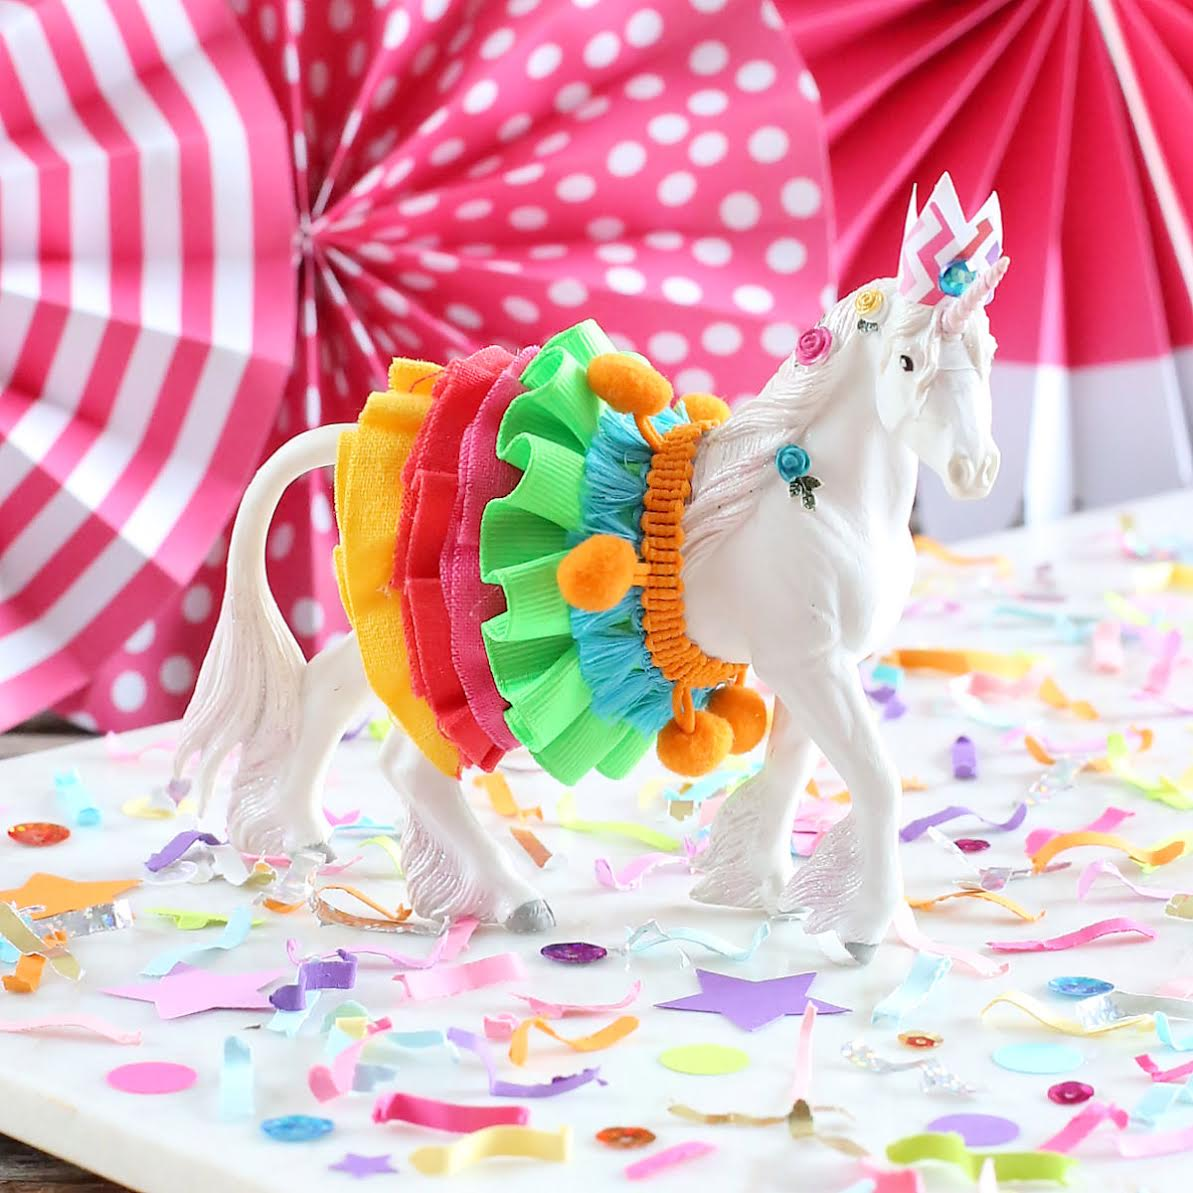 Colorful Unicorn Must-Have Party Items for a Perfectly Styled Unicorn Theme Dessert Table - a sweet Unicorn Animal Cake Topper and Festive Fetti Confetti - from The Bakers Party Shop - see more on www.GiggleHearts.com